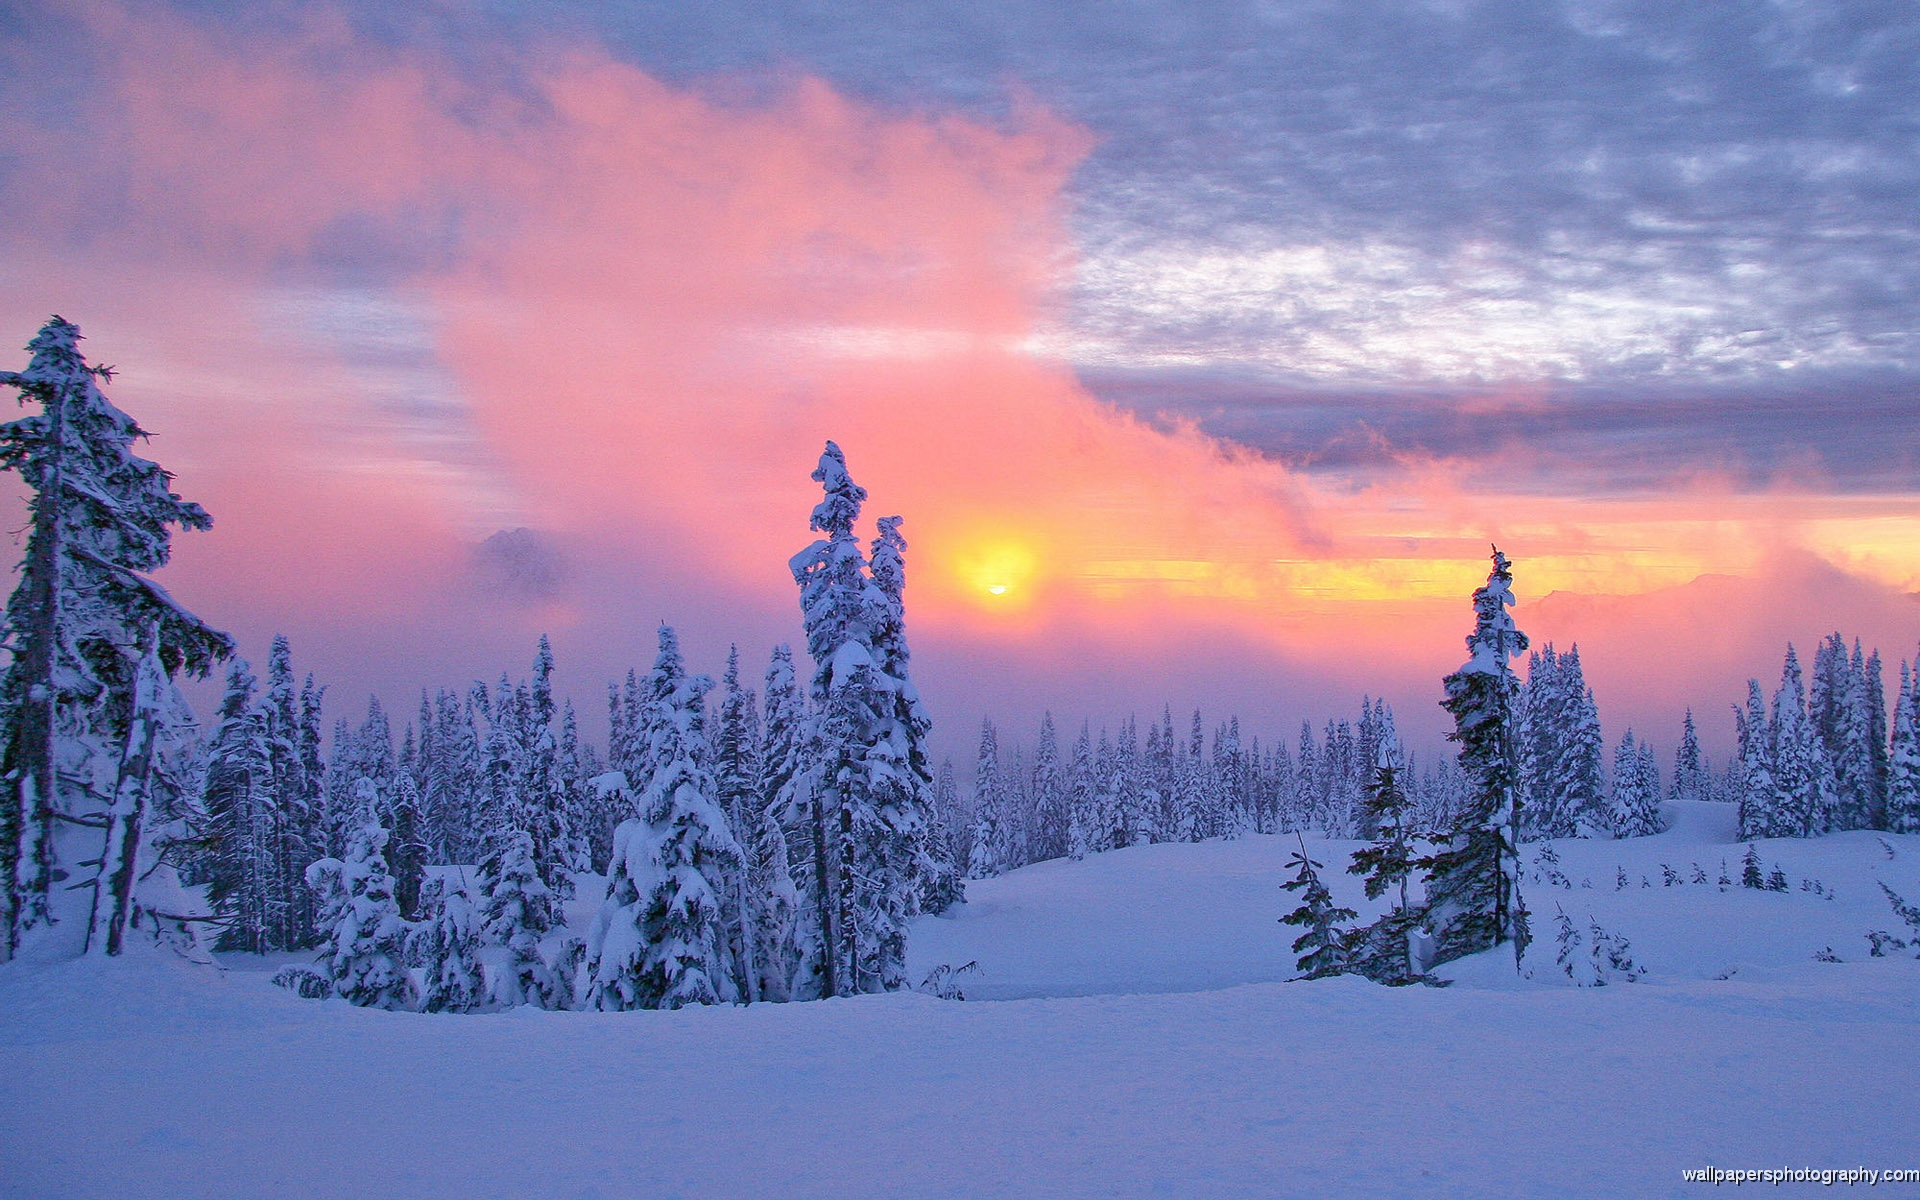 Snow Scenes Sunset HD Wallpaper | Wide Screen Wallpaper 1080p,2K,4K